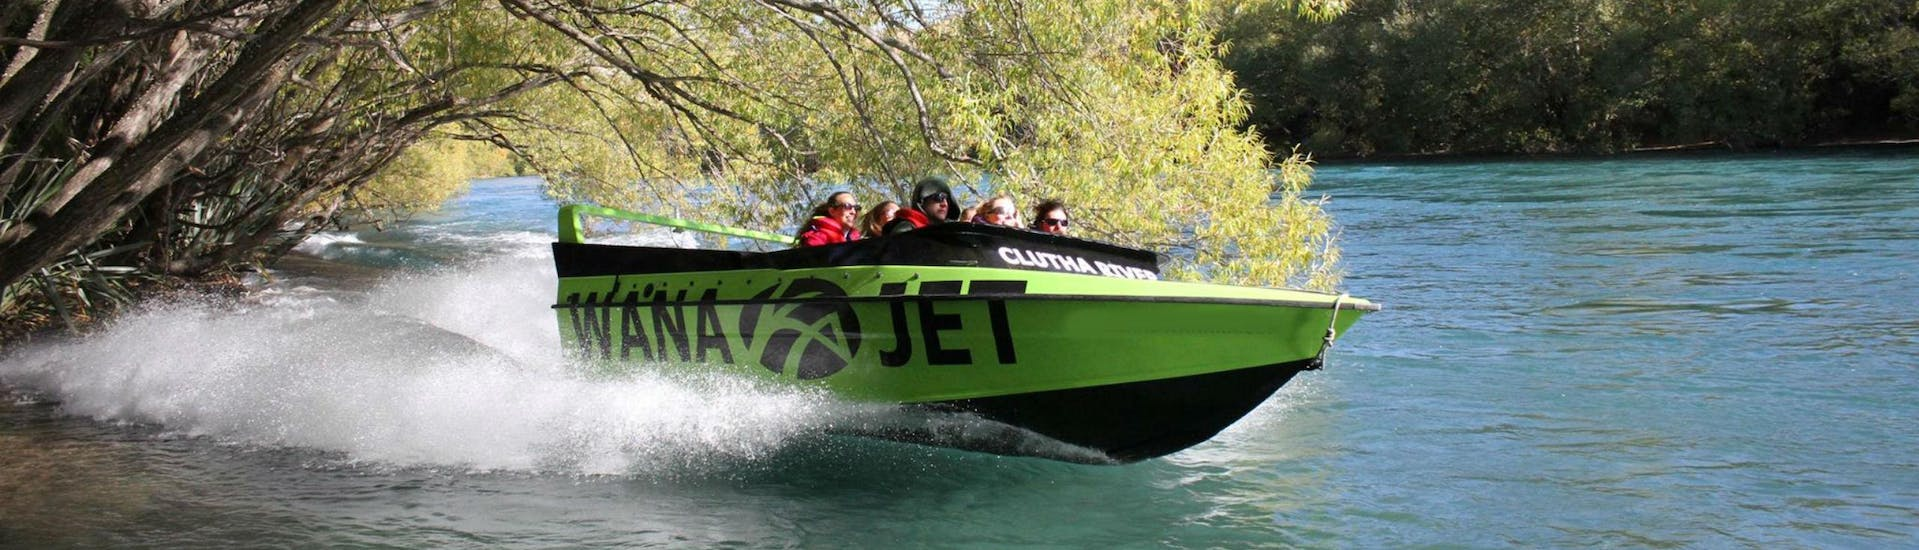 A jet boat operated by Lakeland Wanaka is speeding along Clutha River during the Wanaka Jet Boat Tour.